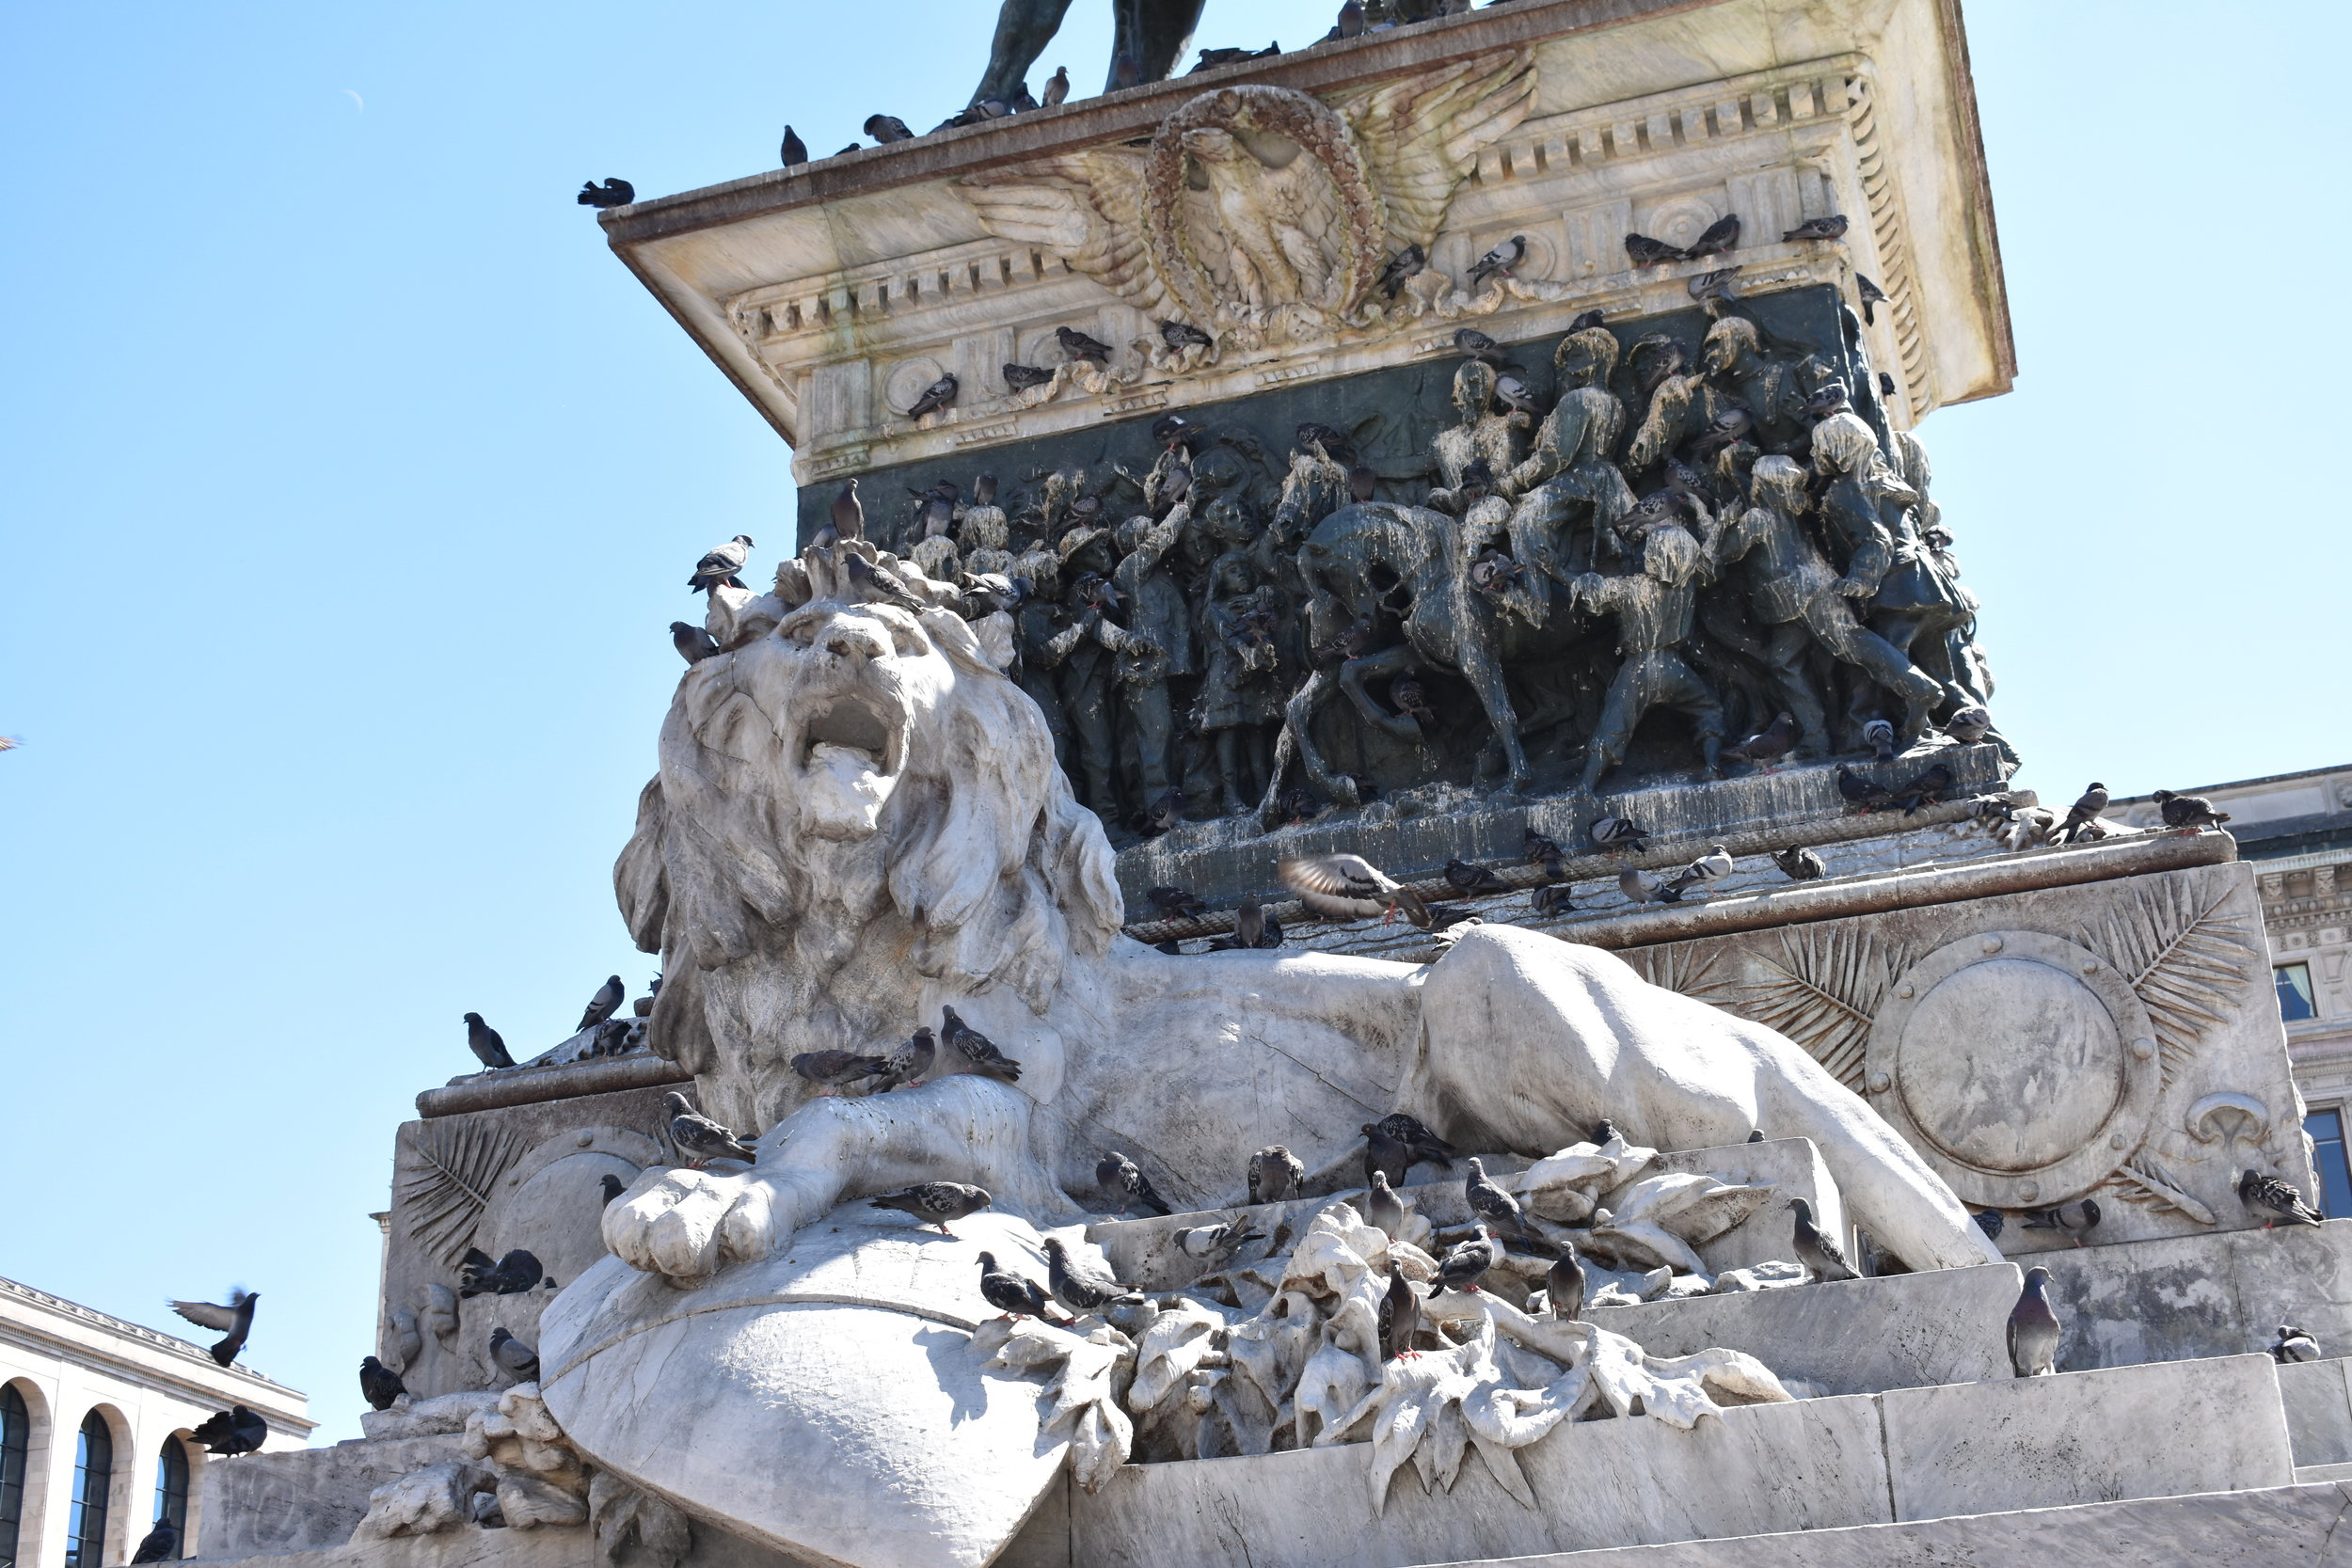 Doesn't the lion looks furious about all of the pigeons?